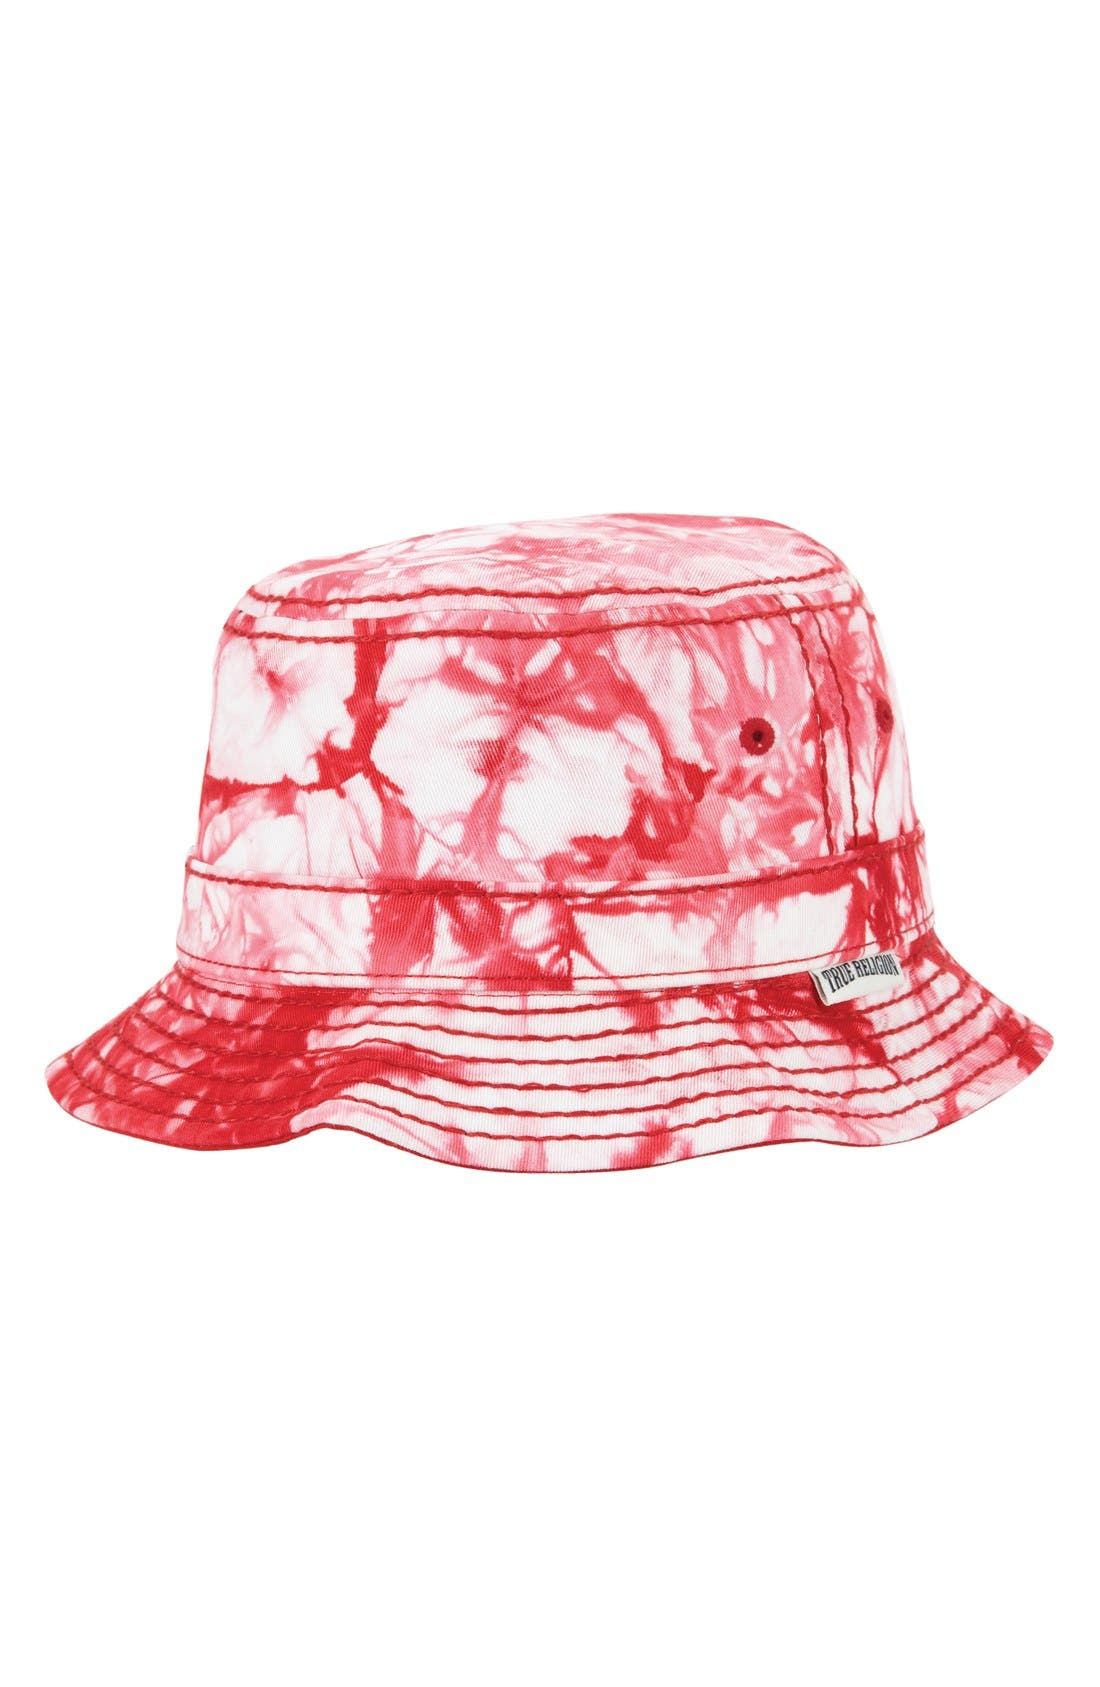 Marble Dye Bucket Hat,                             Main thumbnail 1, color,                             True Red